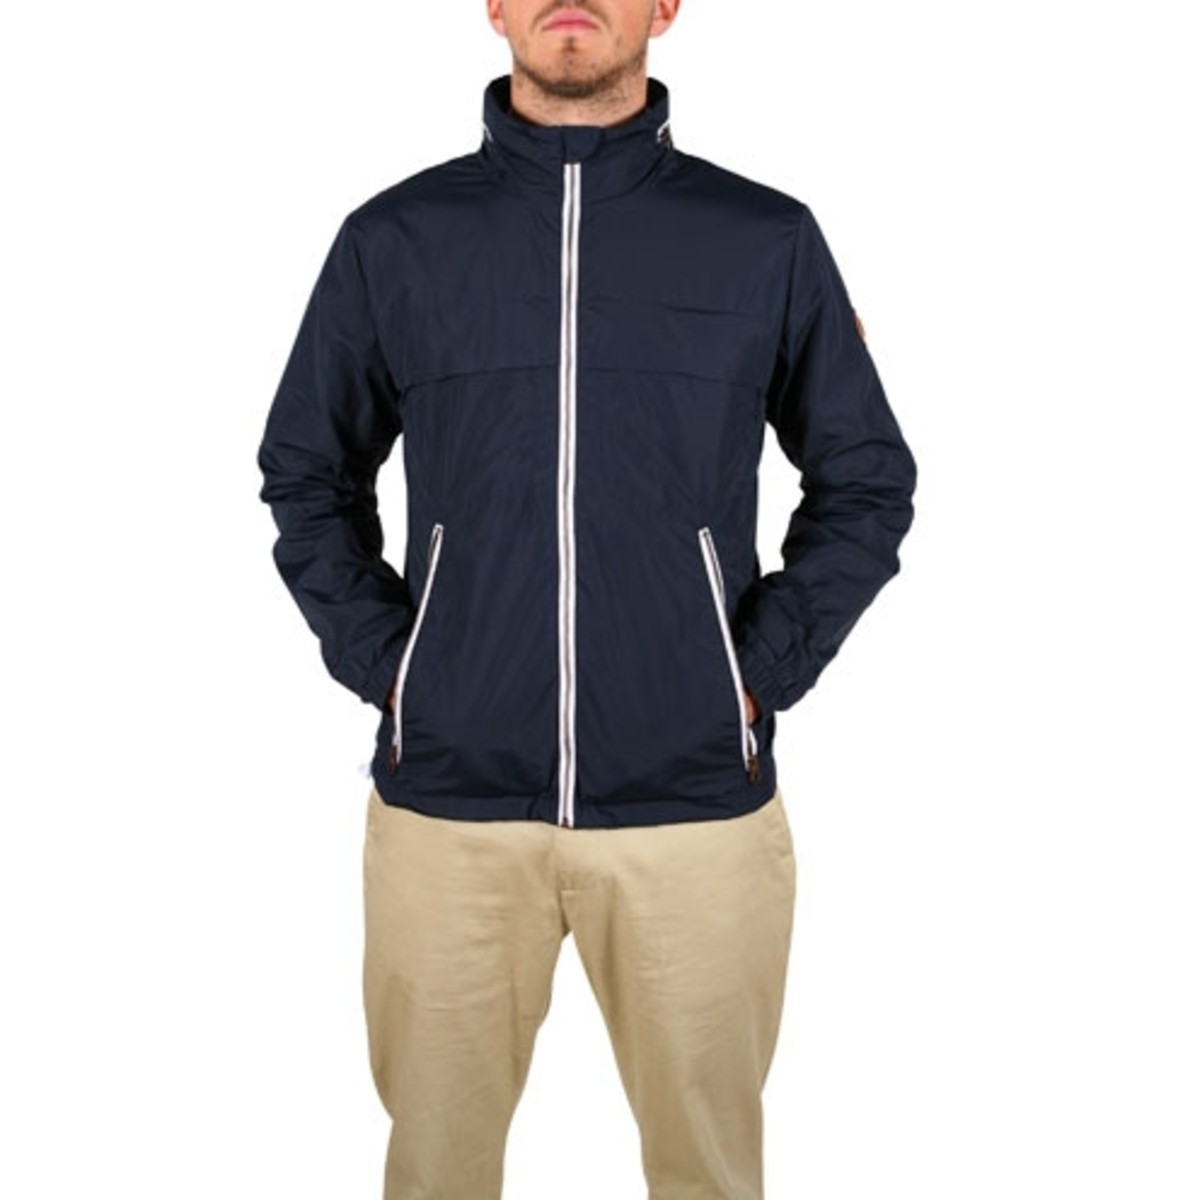 Penfield SS2011 Jackets 42